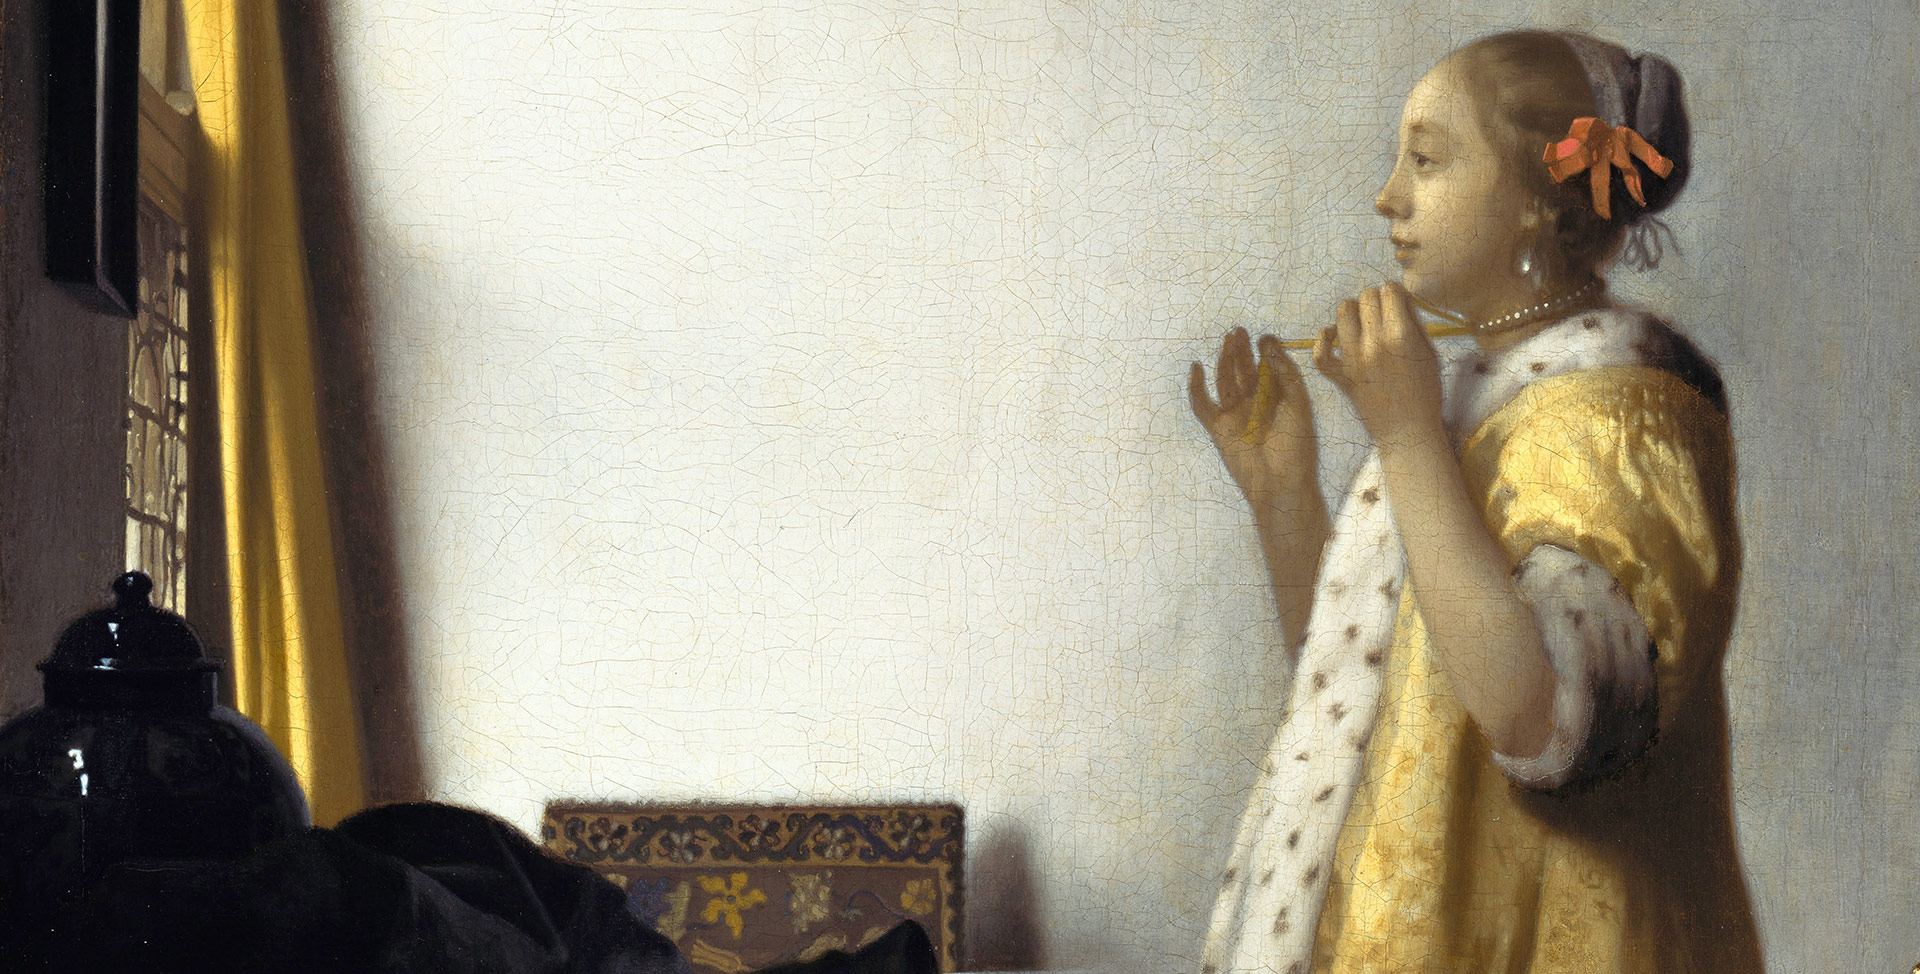 A detail from a painting by Johannes Vermeer, titled Young Woman with a Pearl Necklace, dated 1664.